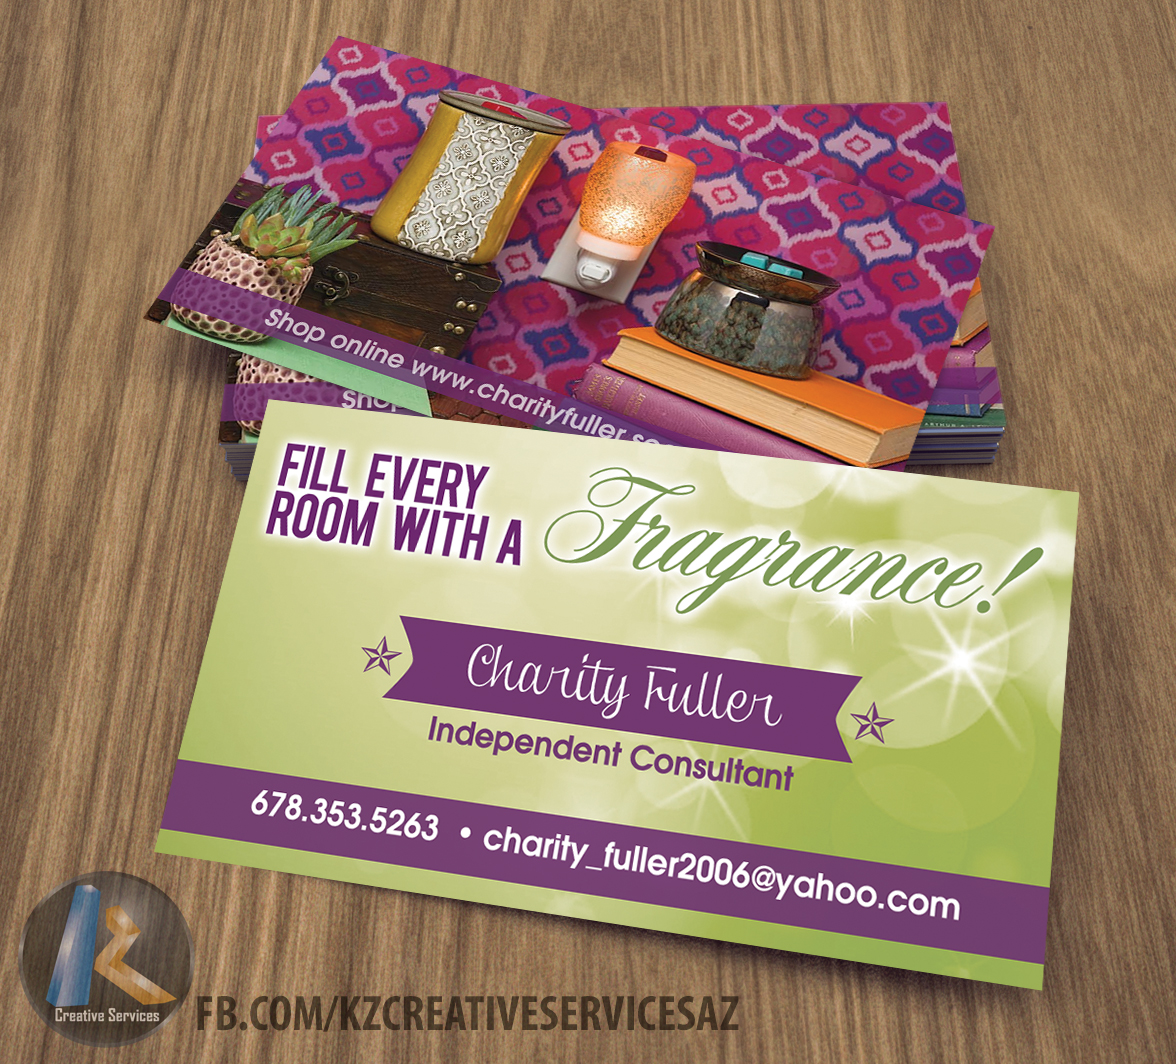 scentsy business cards style 1  u00b7 kz creative services